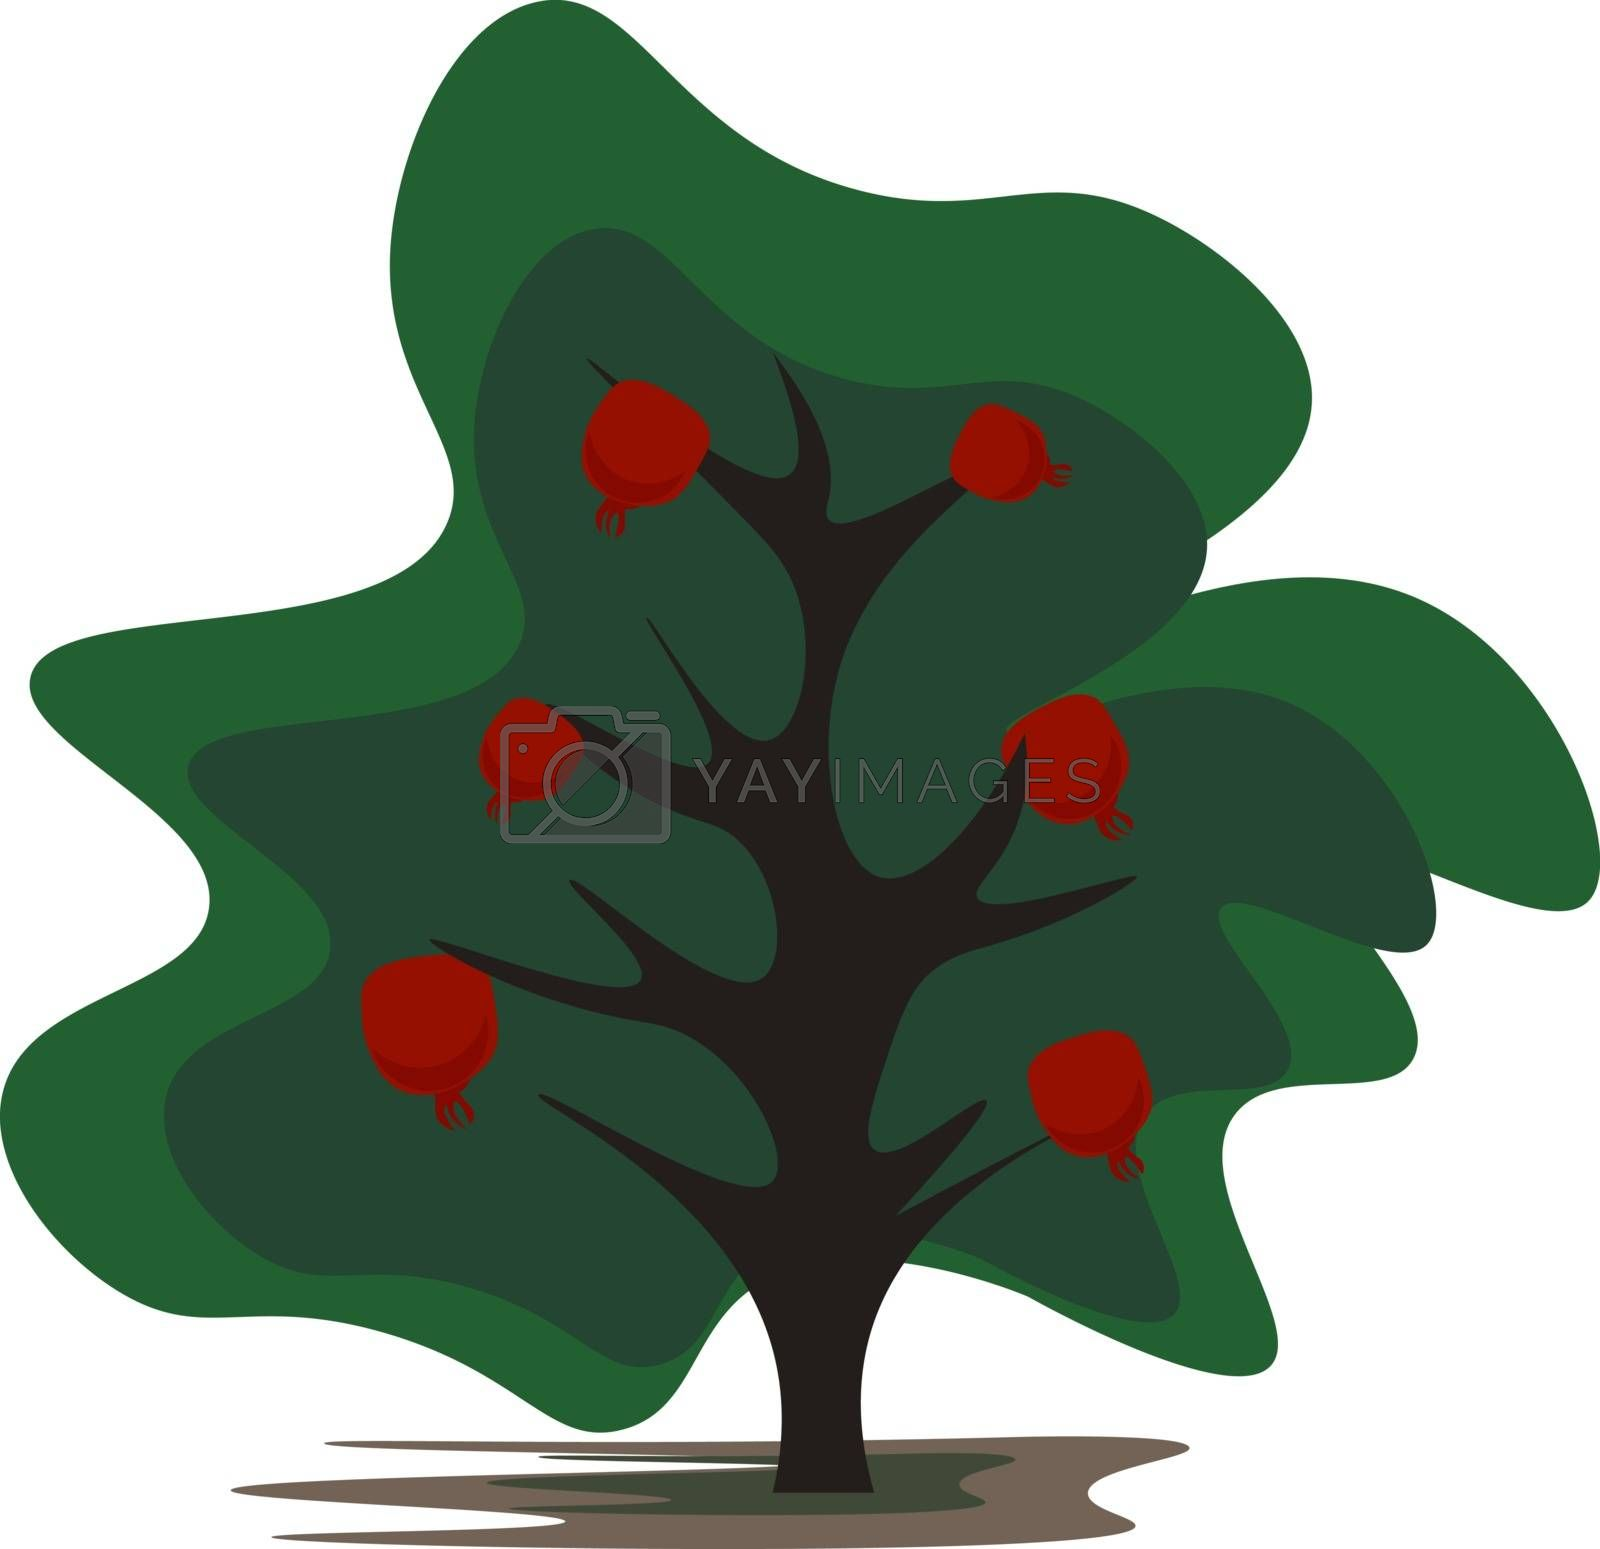 Royalty free image of Cartoon pomegranate tree vector or color illustration by Morphart